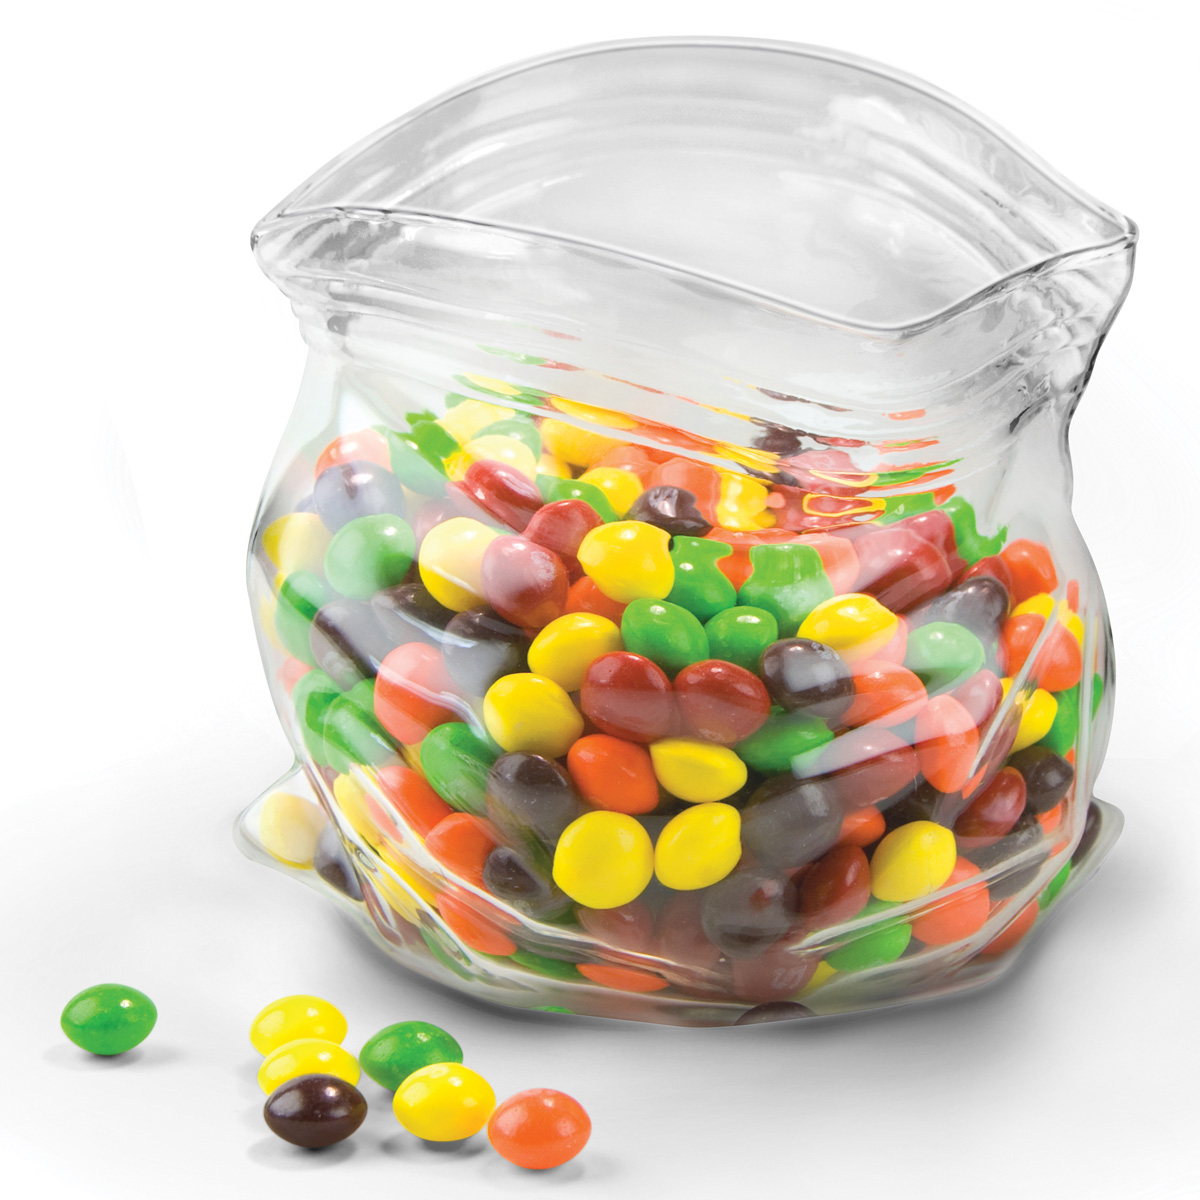 Unzipped Glass Zipper Bag Candy And Nut Bowl The Green